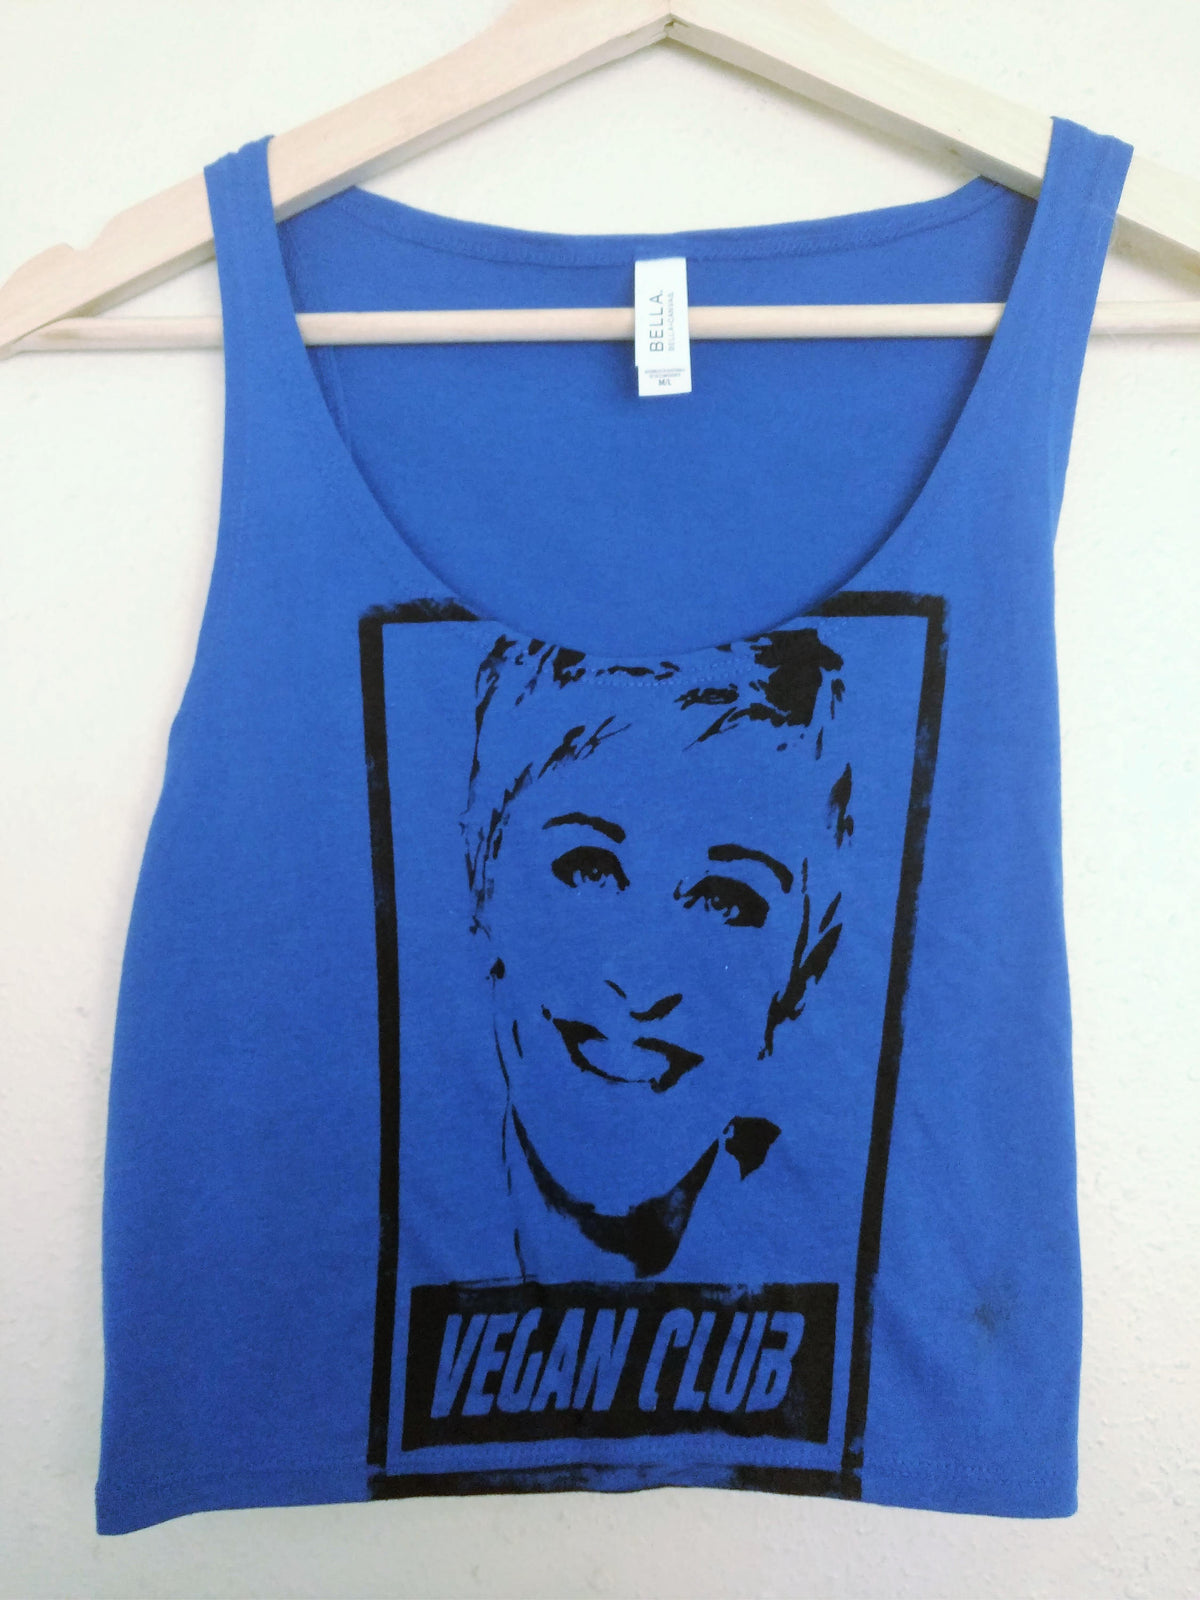 "Unisex T-shirt ""Vegan Club"" featuring Ellen Degeneres by Le Fou"